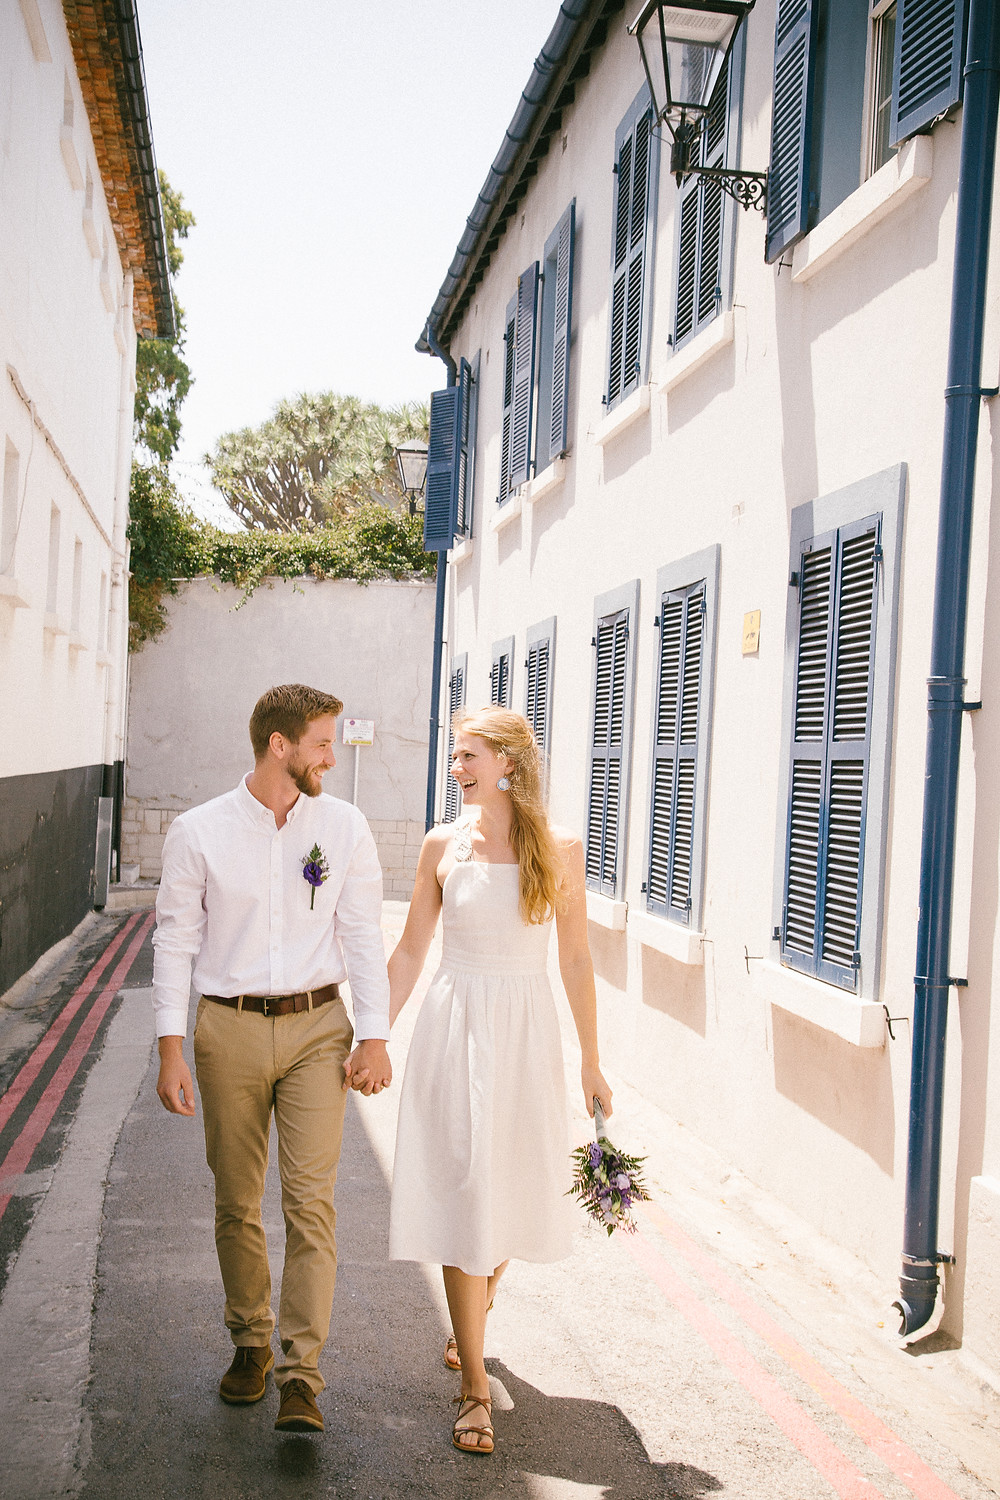 Elopement wedding at the Registry Office in Gibraltar. Gibraltar wedding photographer